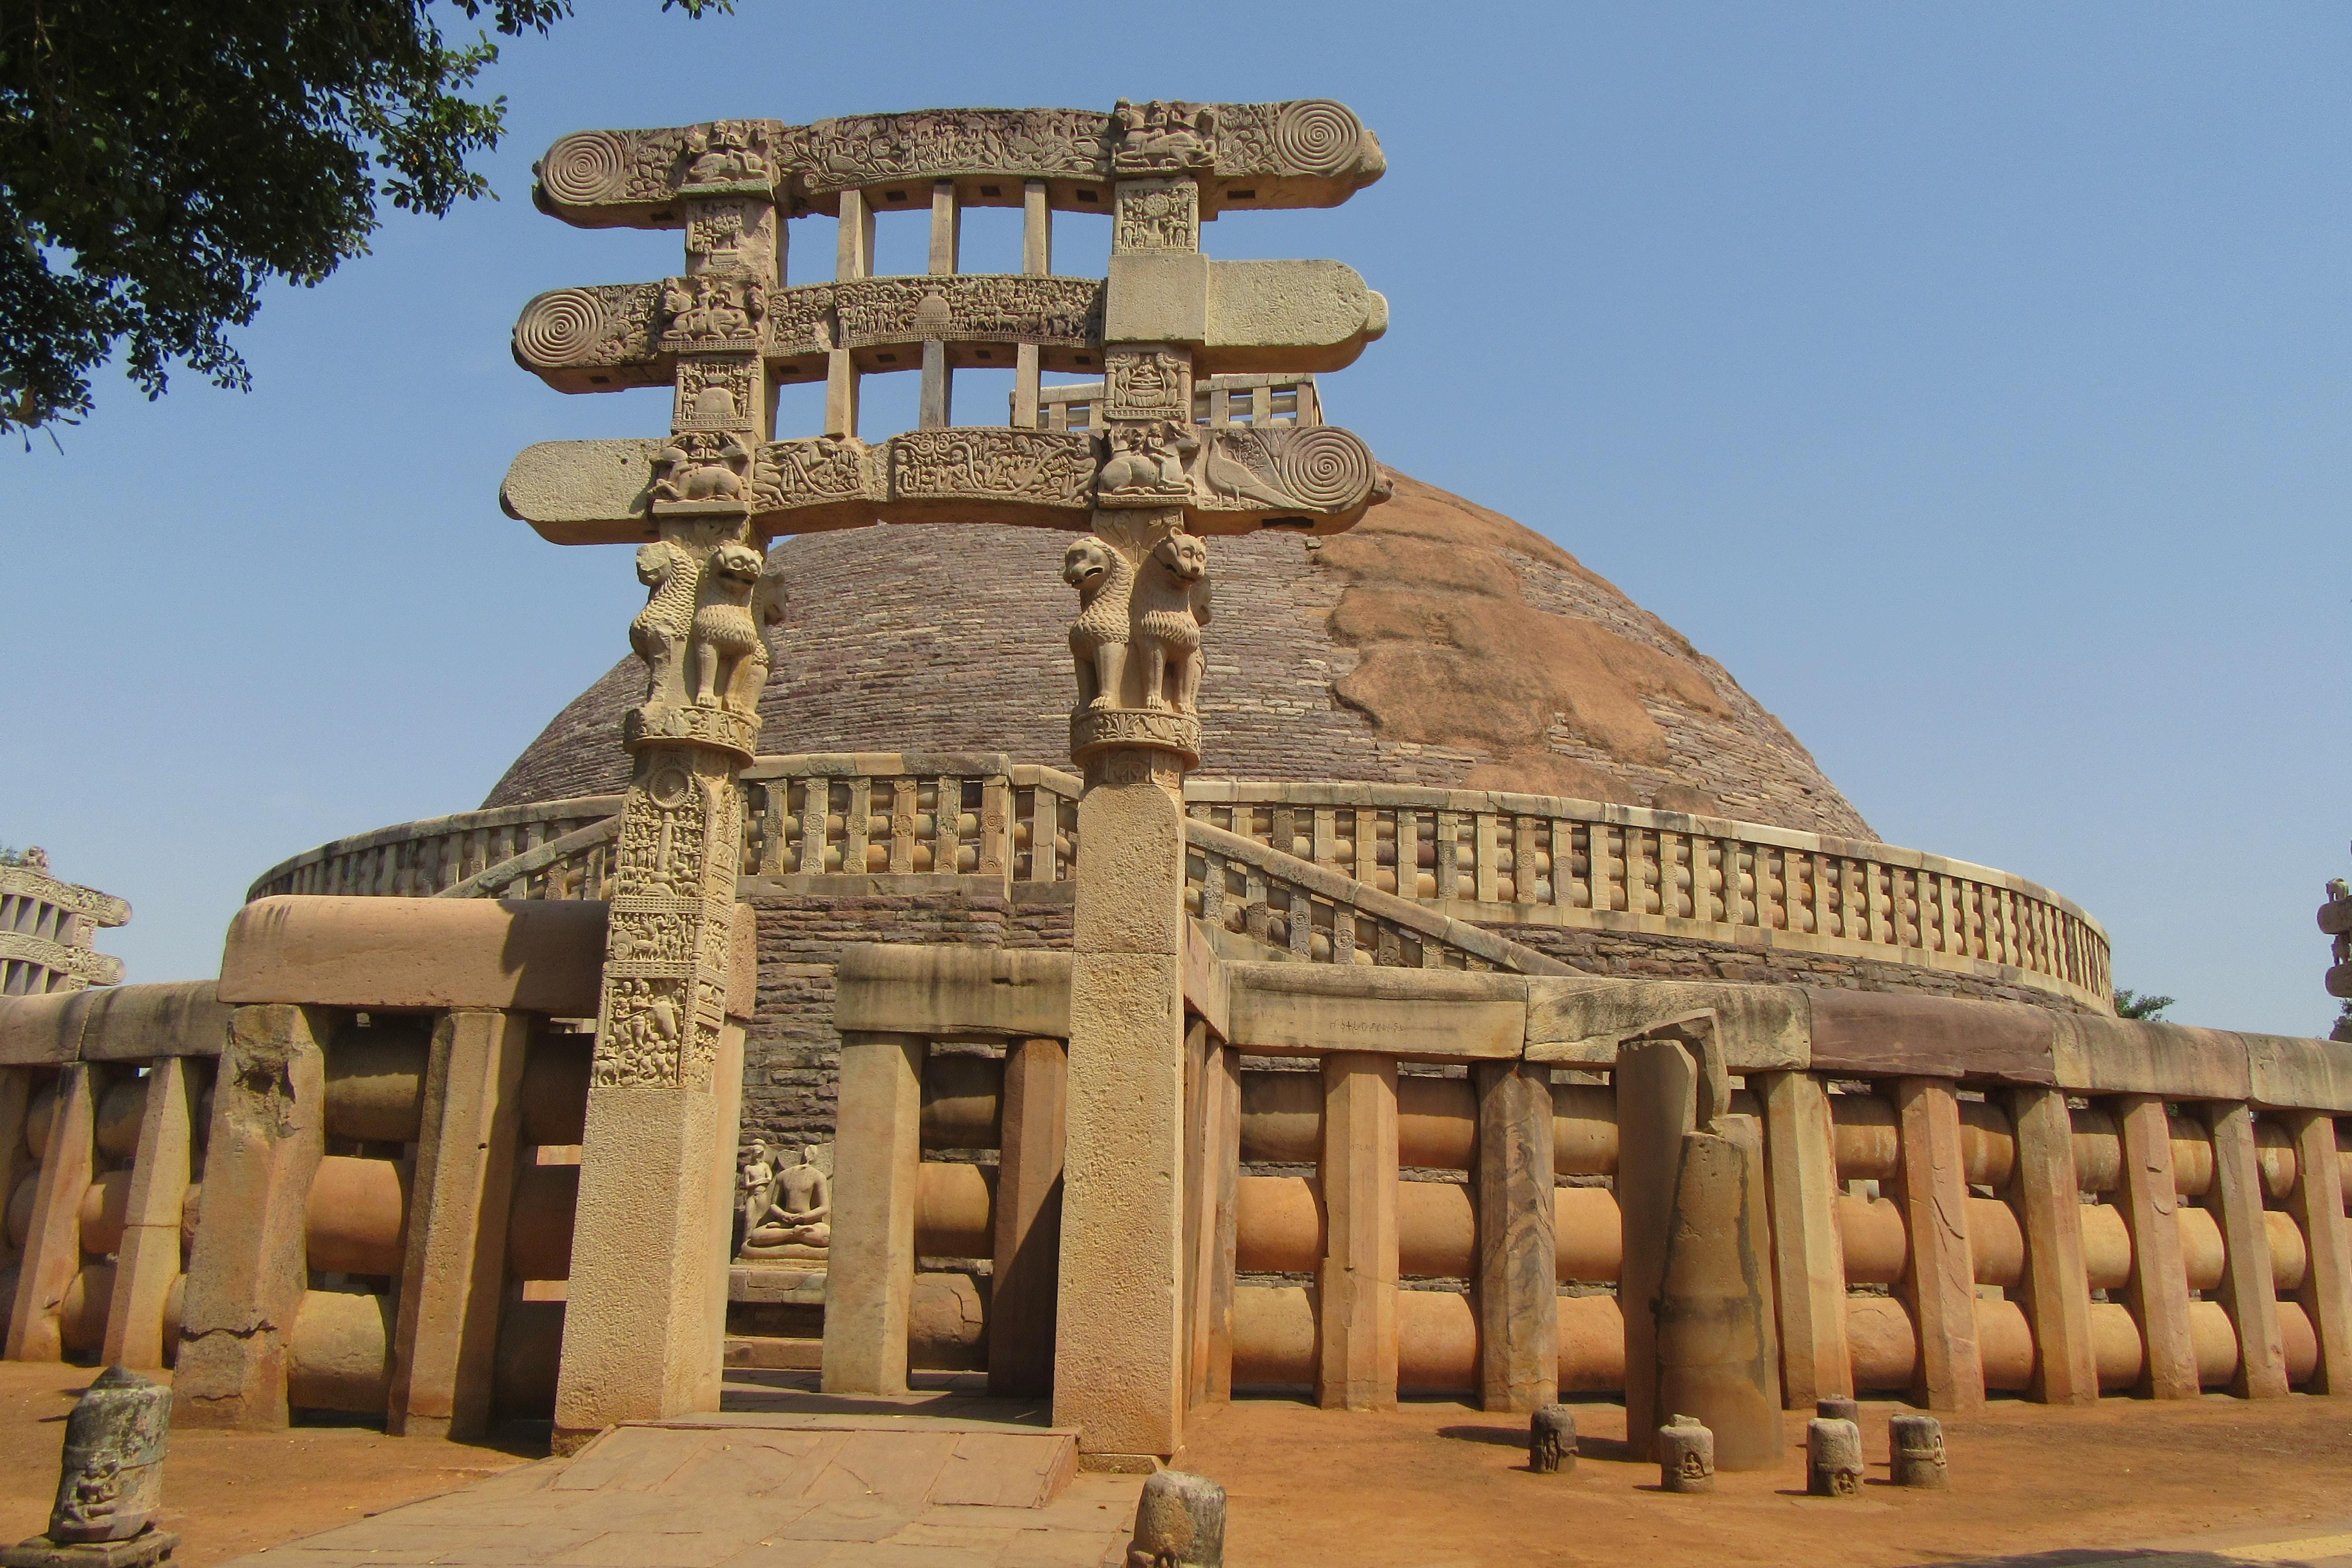 3-Night-4-Days-Bhopal-Tour-Package-with-Sanchi-Stupa-JustWravel-1597394424-3.jpg